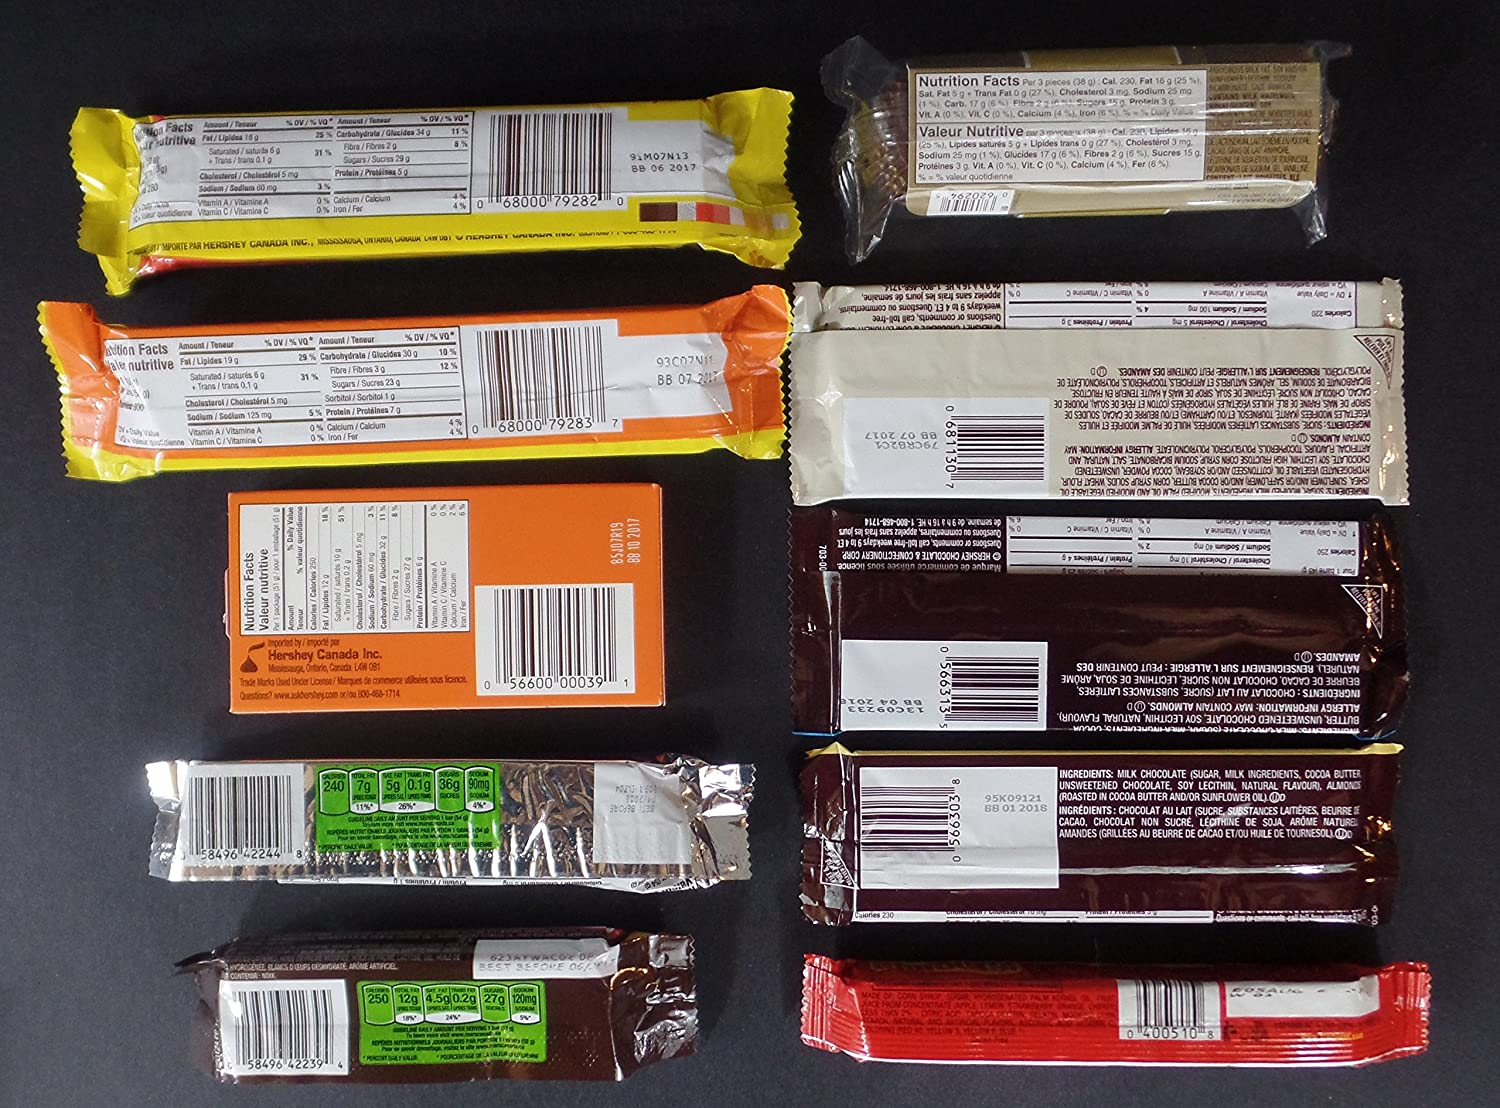 Amazon.com : Lot of 30 Packs Chocolate & Candy Assortment Includes Snickers, Mars and more. Sorted and Paged by Variety To Go : Grocery & Gourmet Food